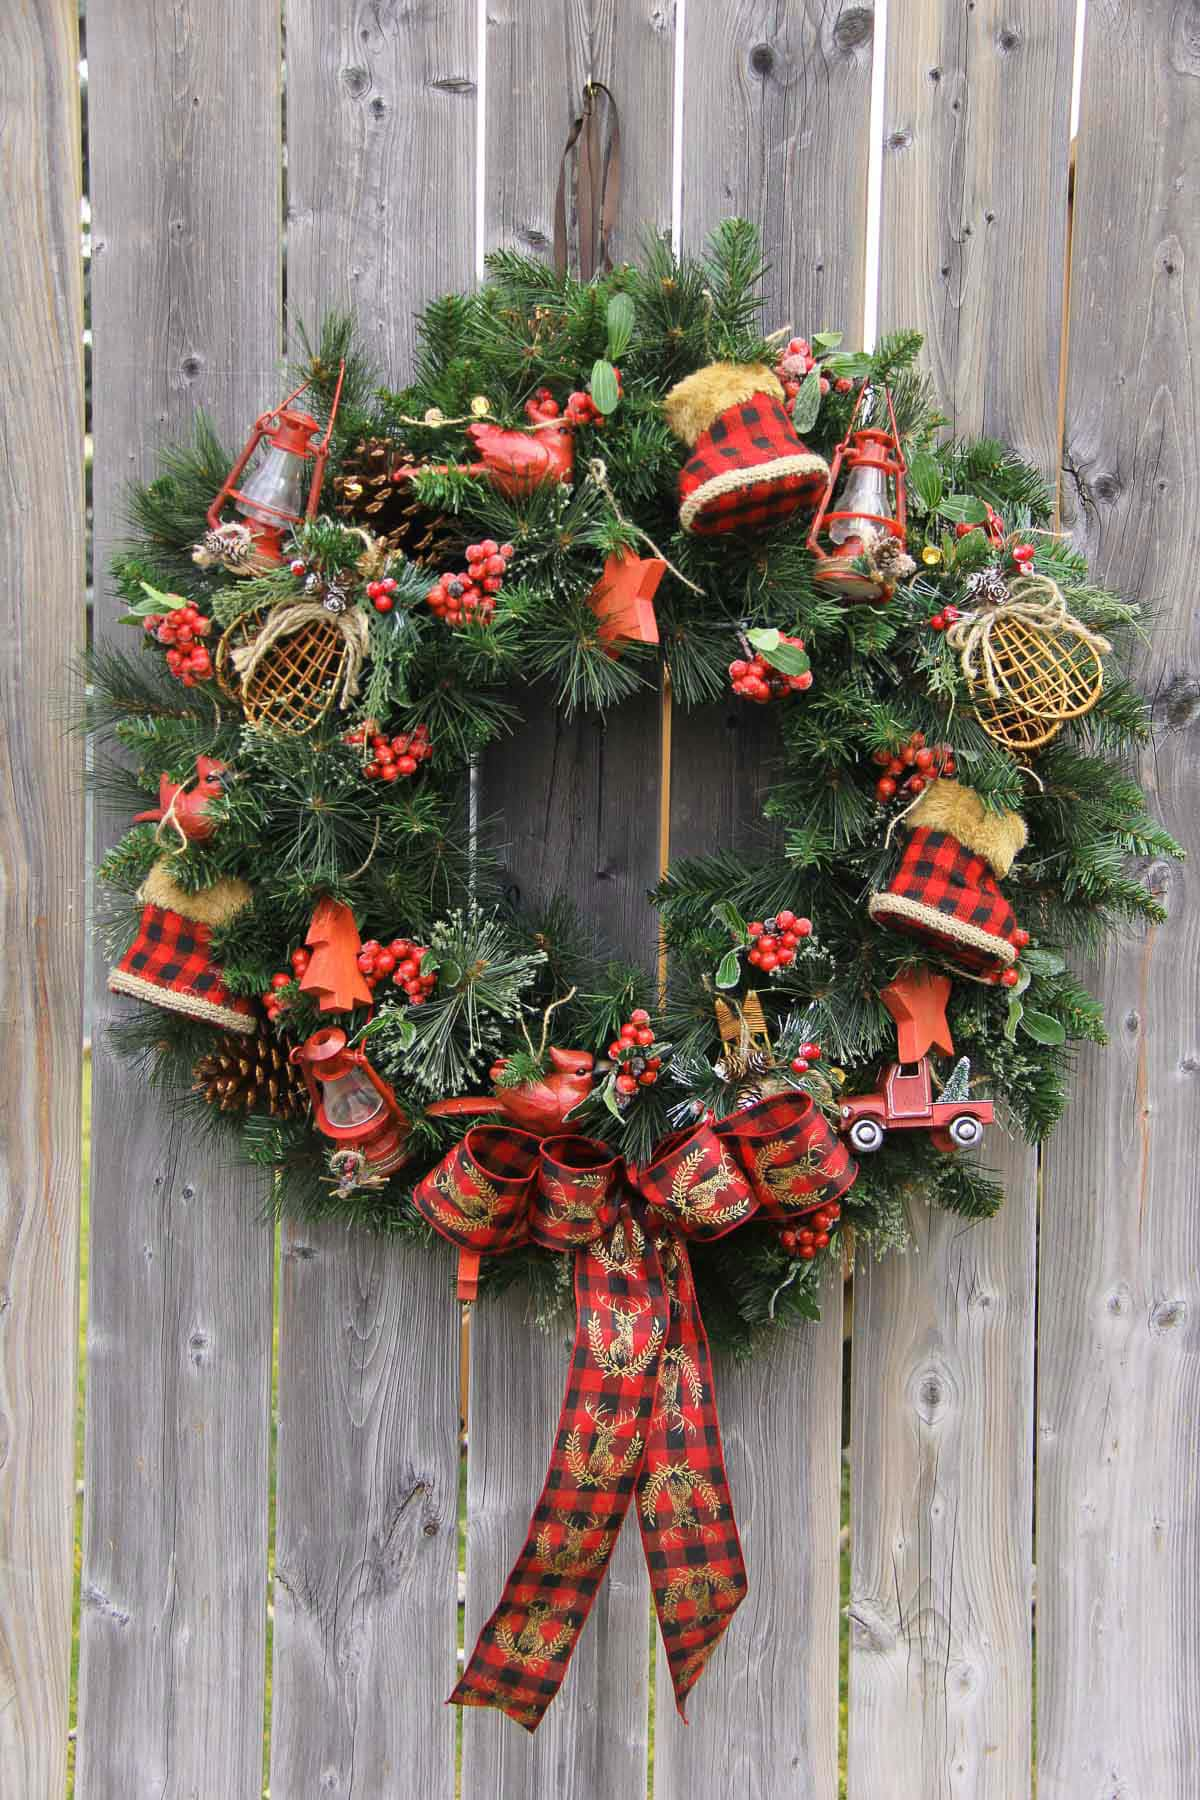 Comfort & Joy Wreath